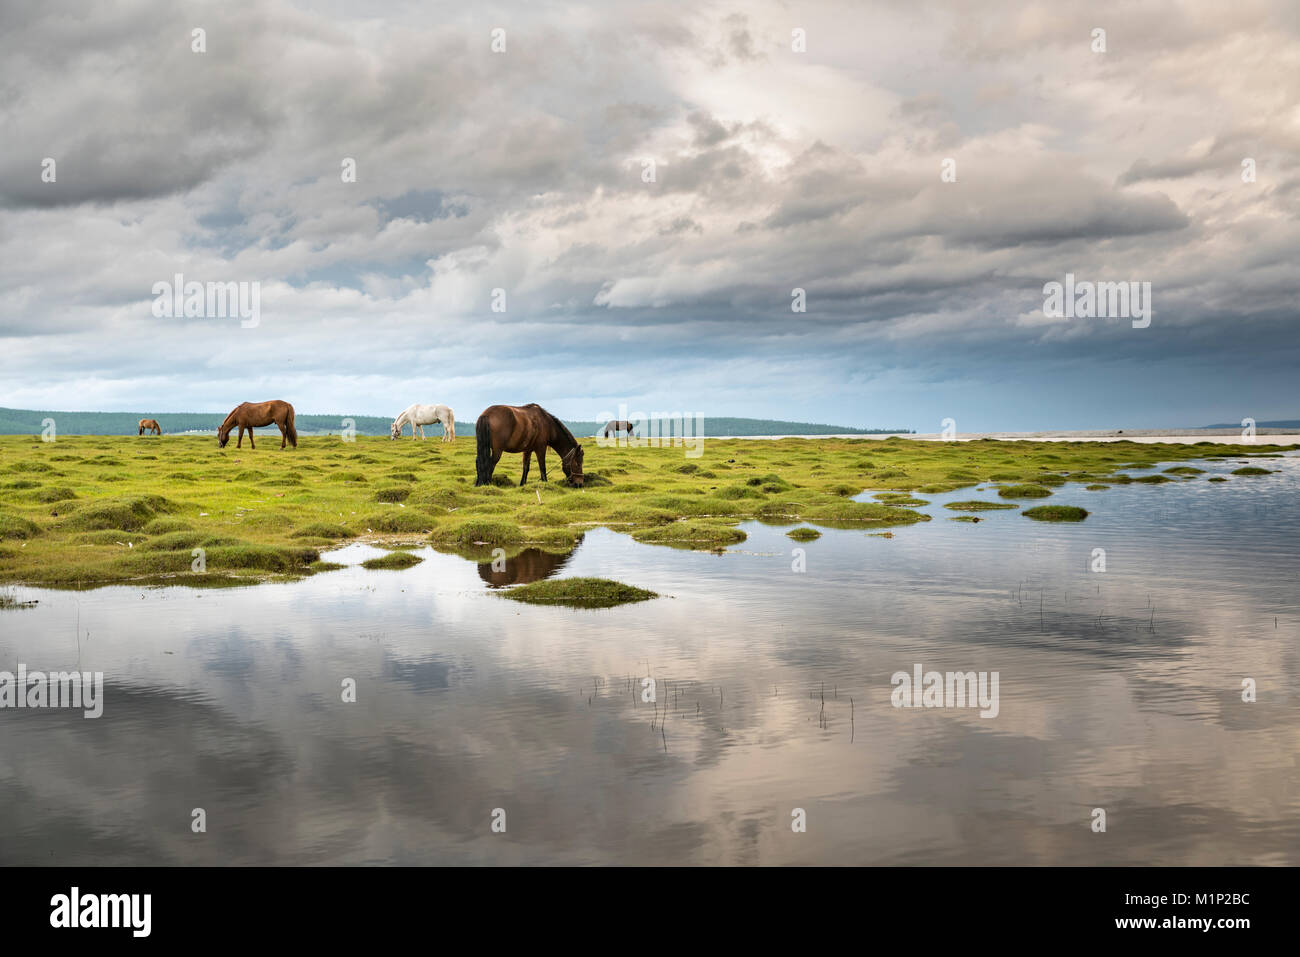 Horses grazing on the shores of Hovsgol Lake, Hovsgol province, Mongolia, Central Asia, Asia - Stock Image